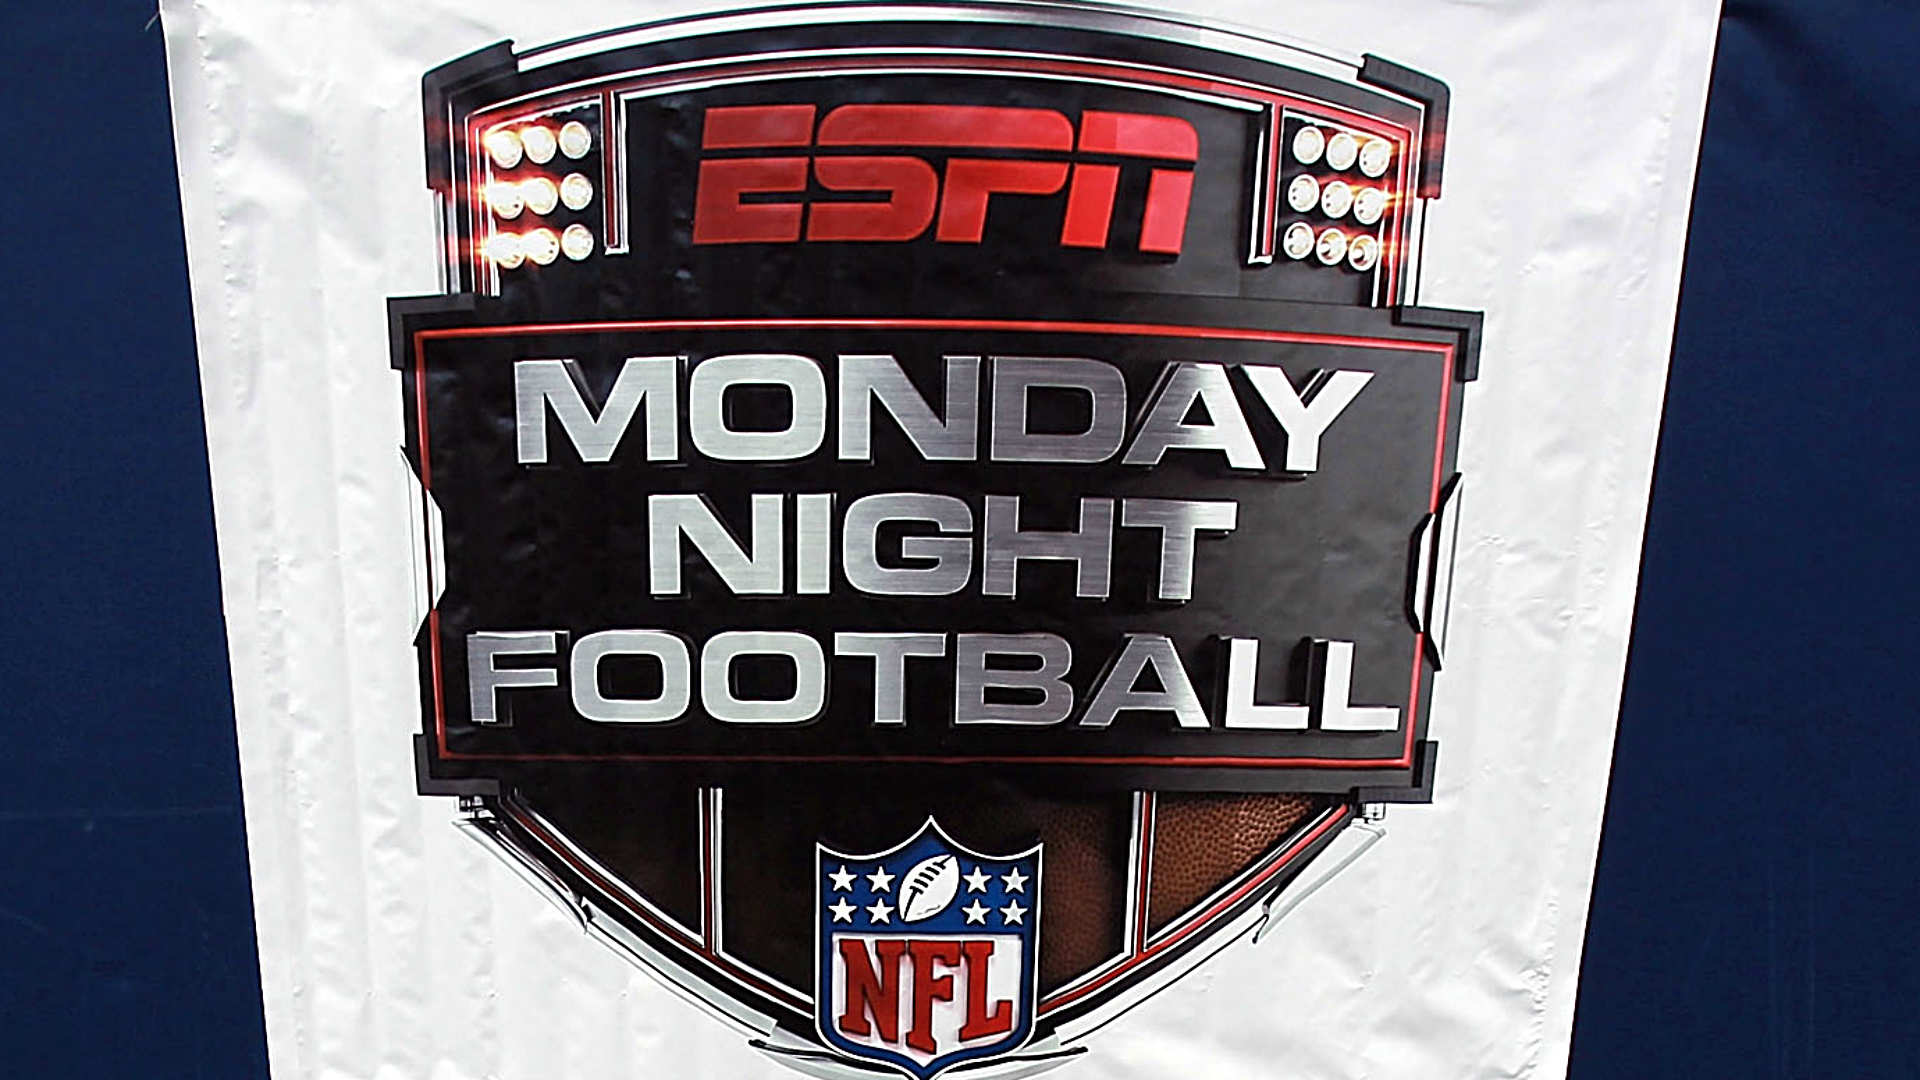 ESPN could MegaCast 'Monday Night Football' the way it does college football